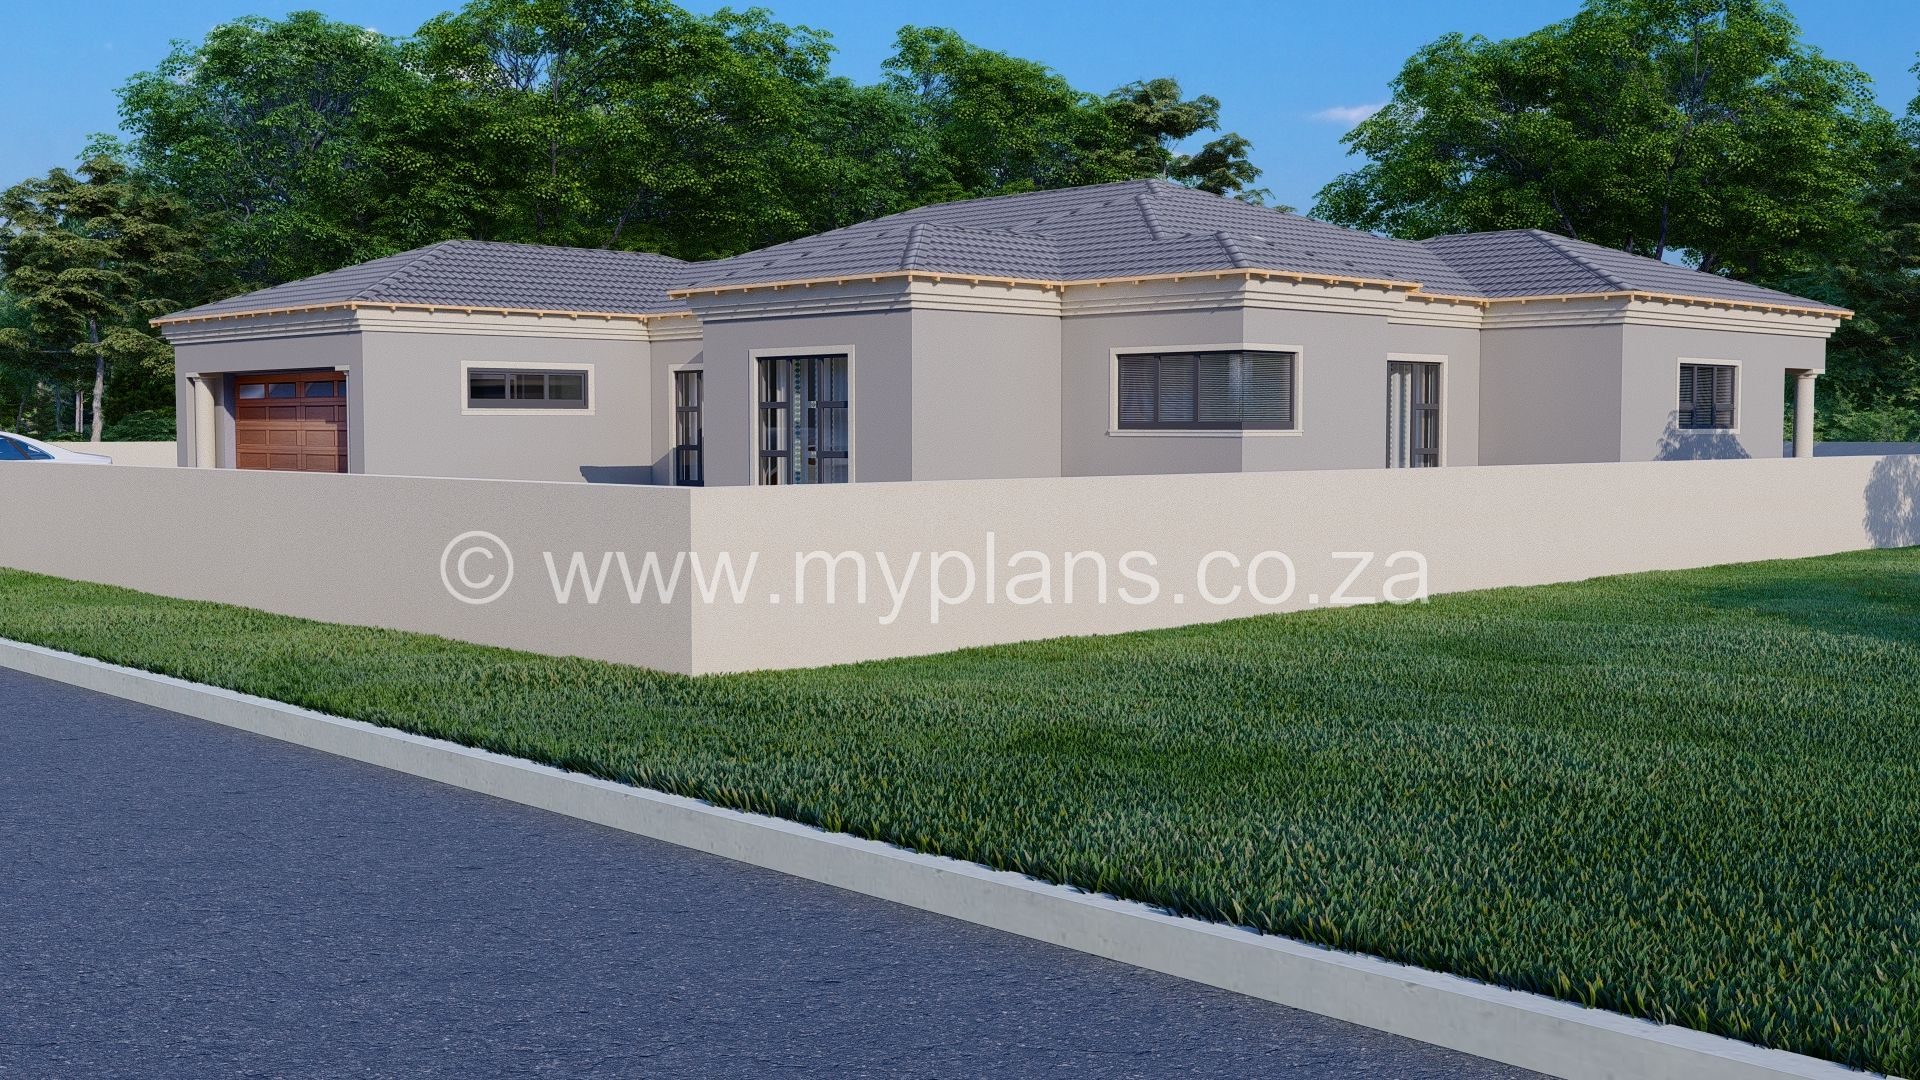 3 Bedroom House Plan Mlb 069s In 2020 My House Plans Family House Plans Round House Plans